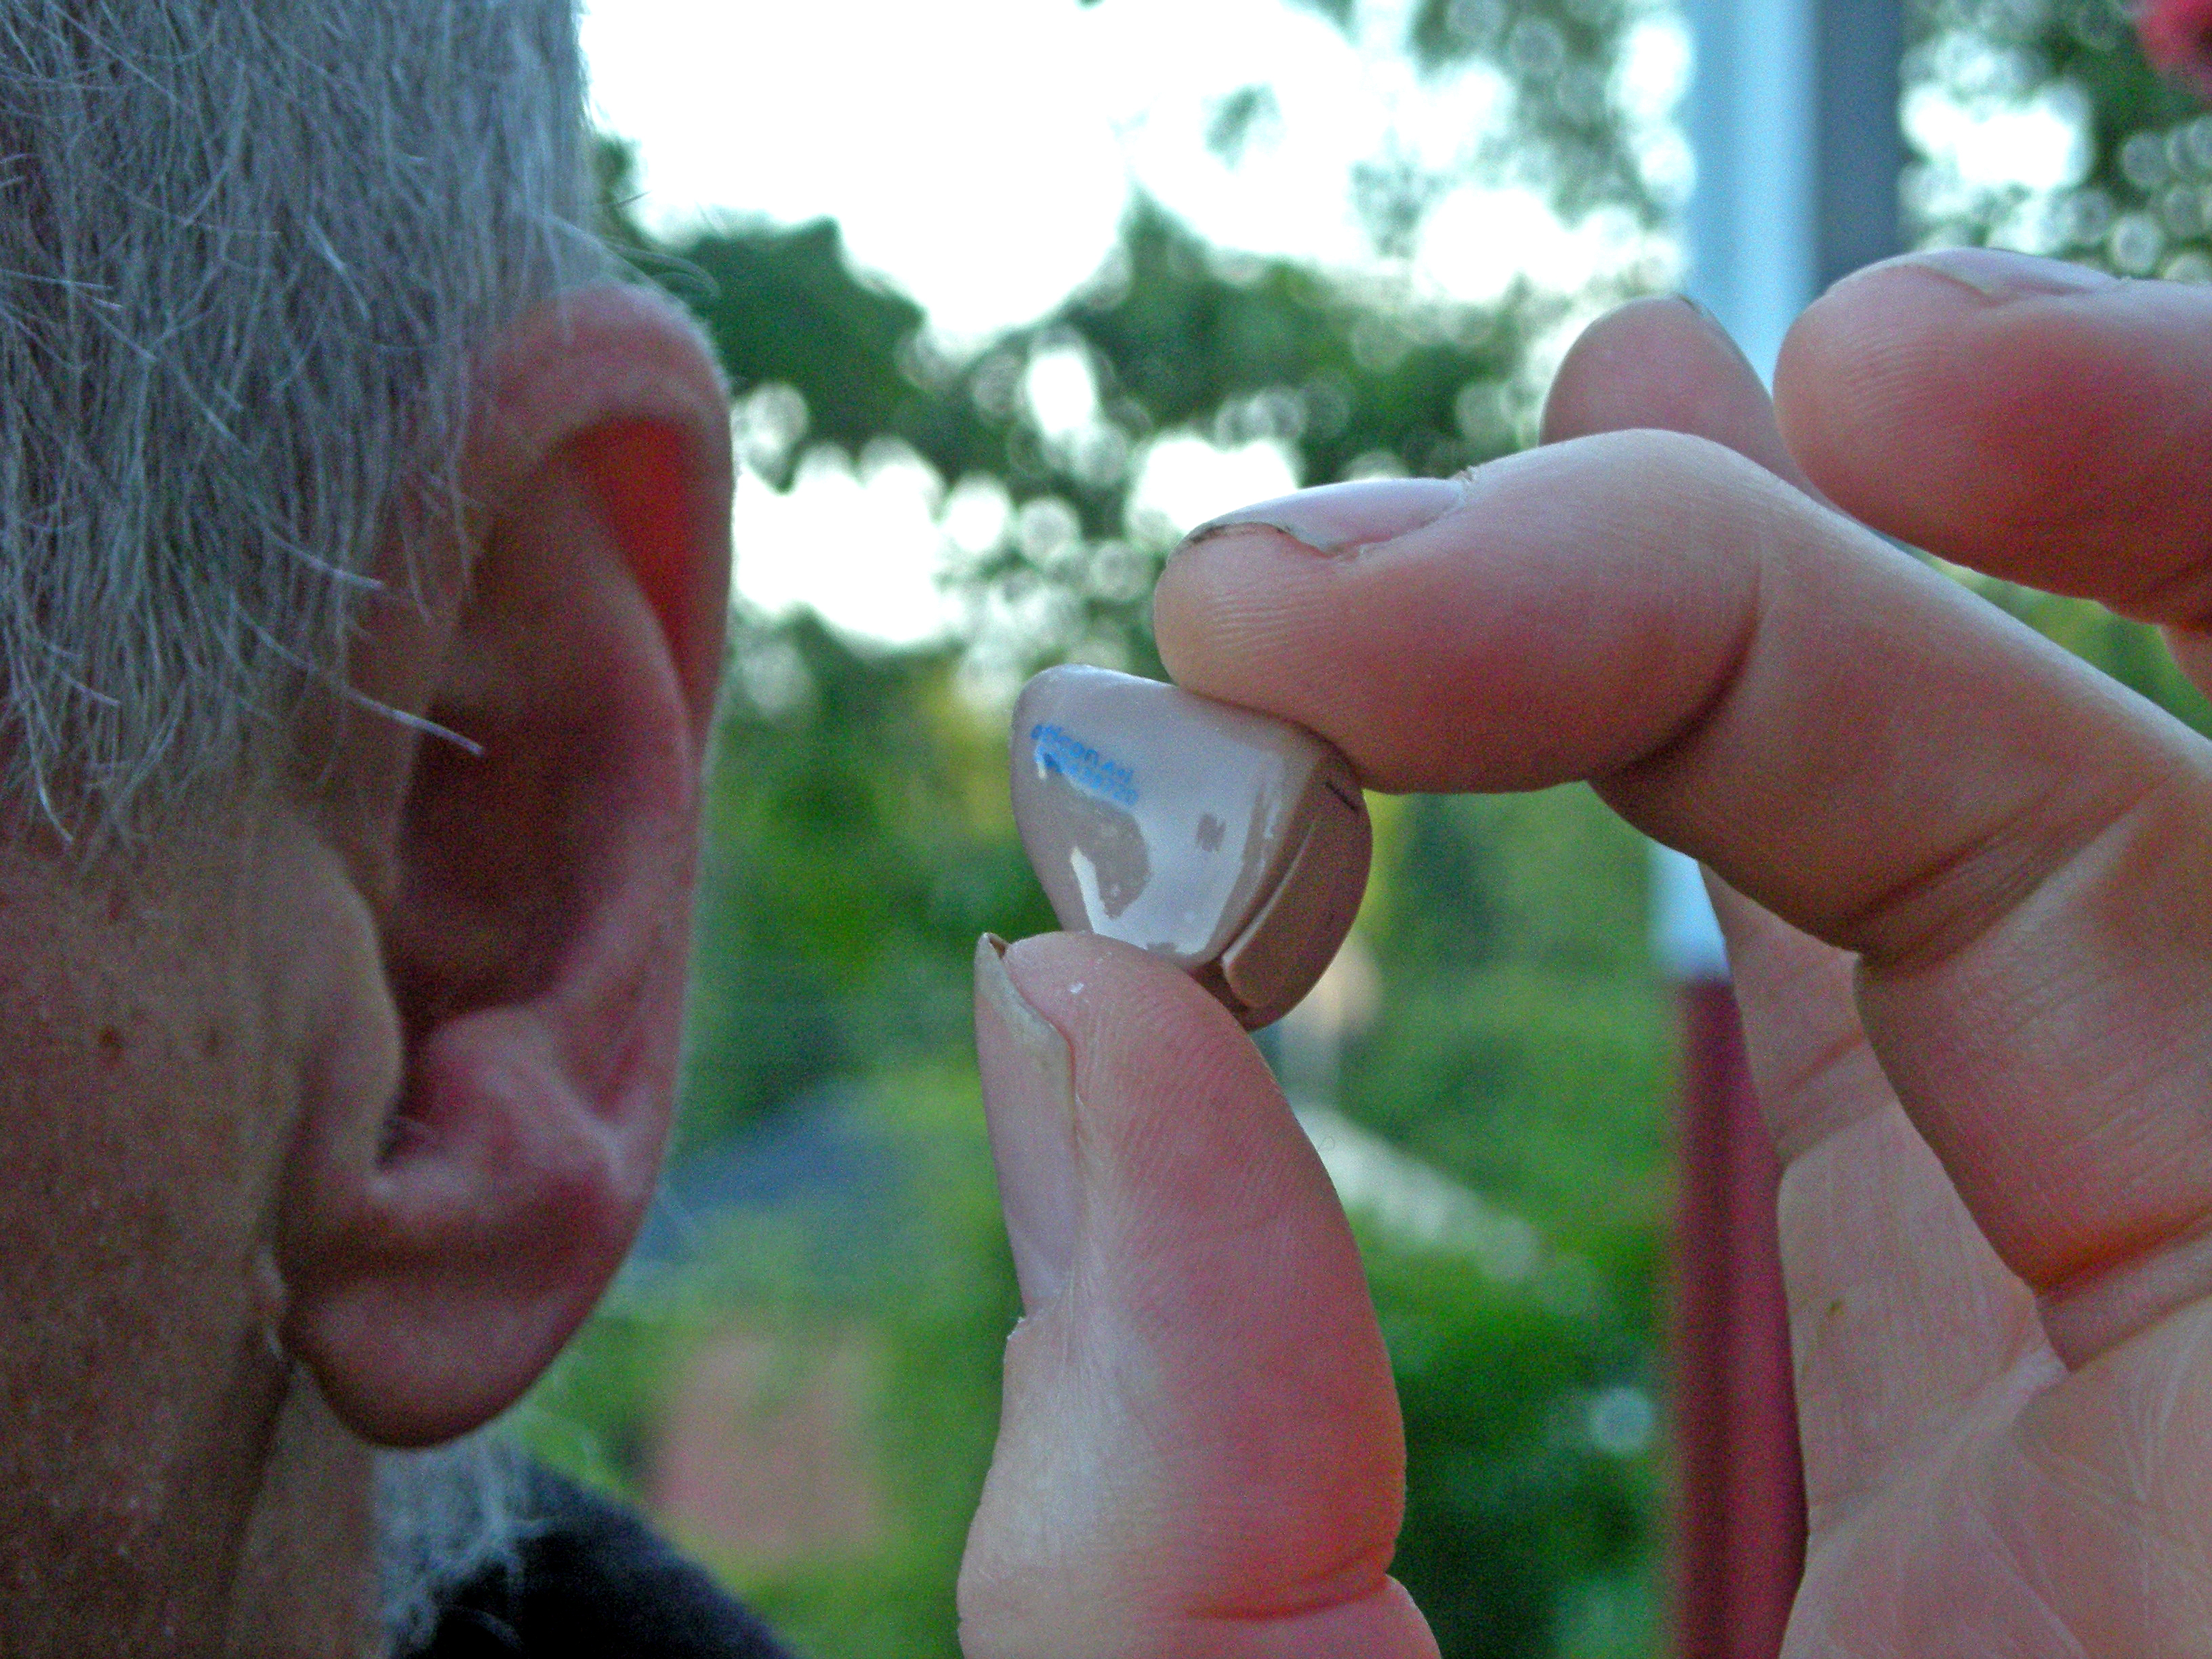 http://upload.wikimedia.org/wikipedia/commons/9/96/Hearing_aid_20080620.jpg